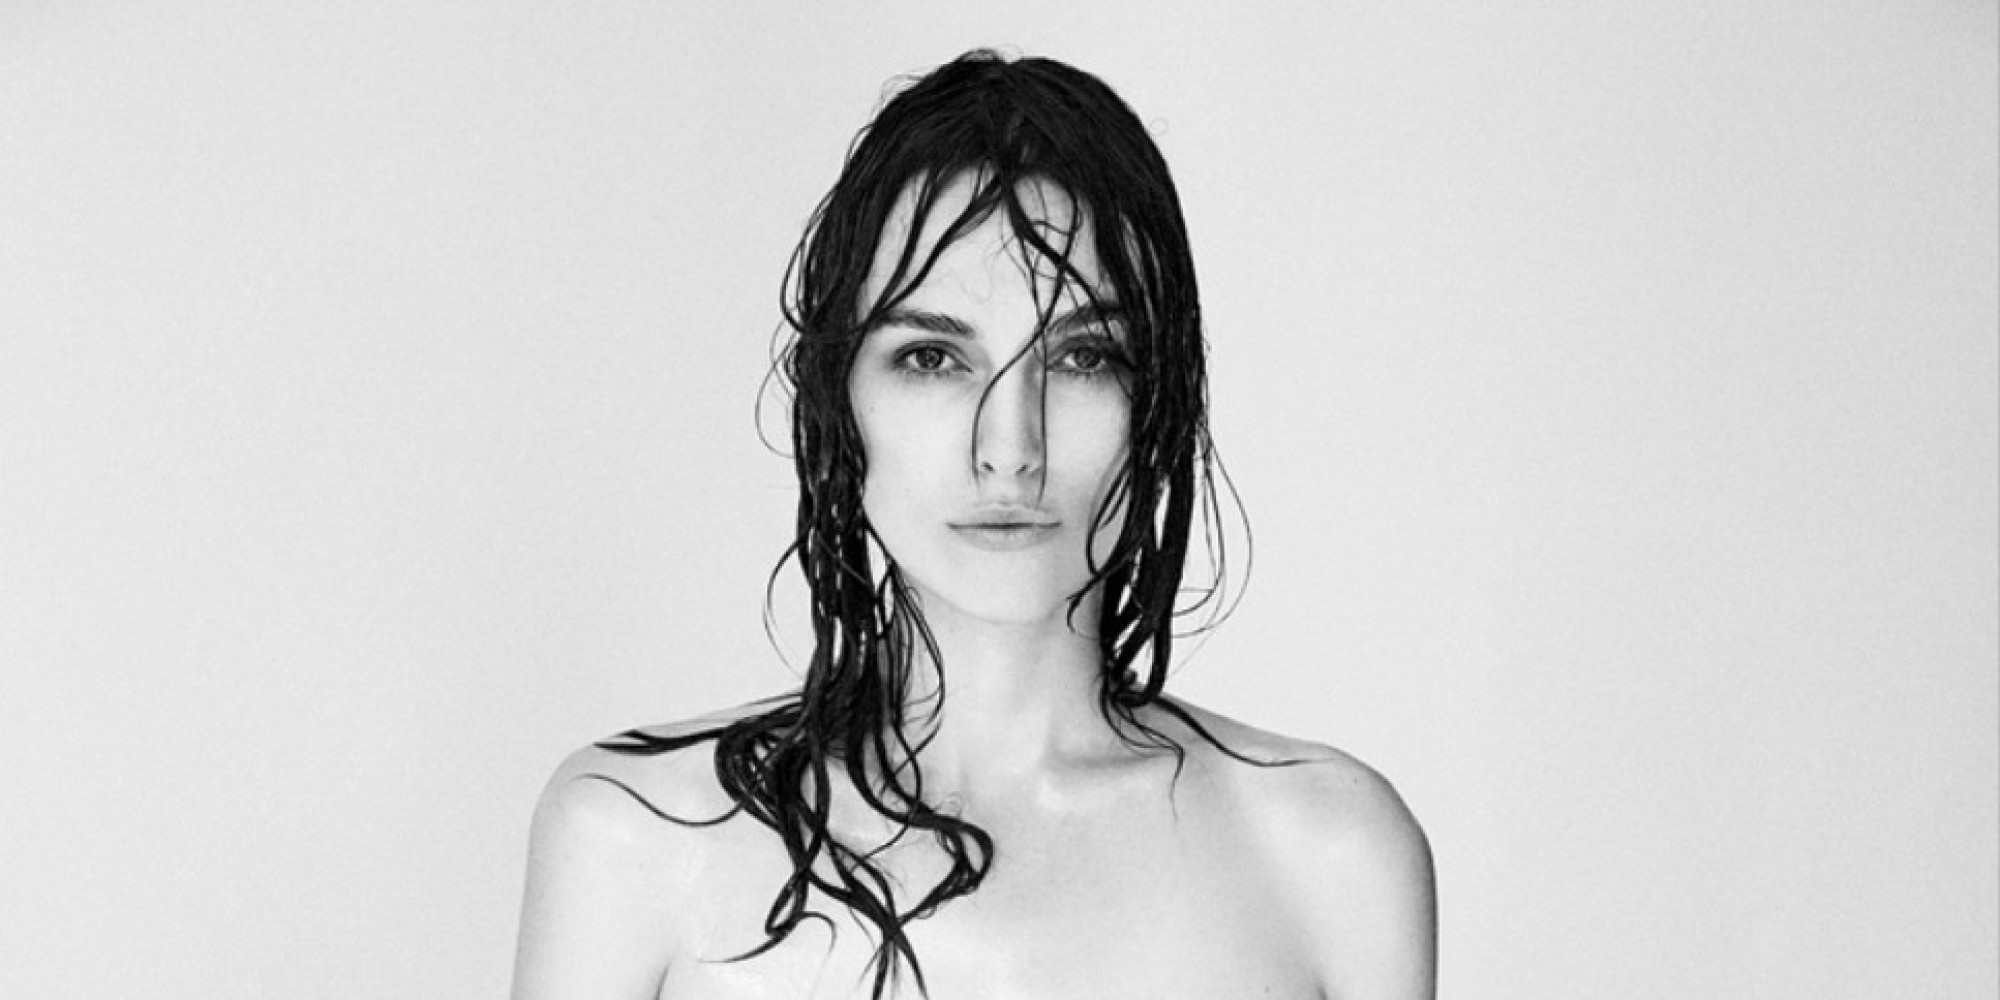 Thank nude keira knightley photoshop have